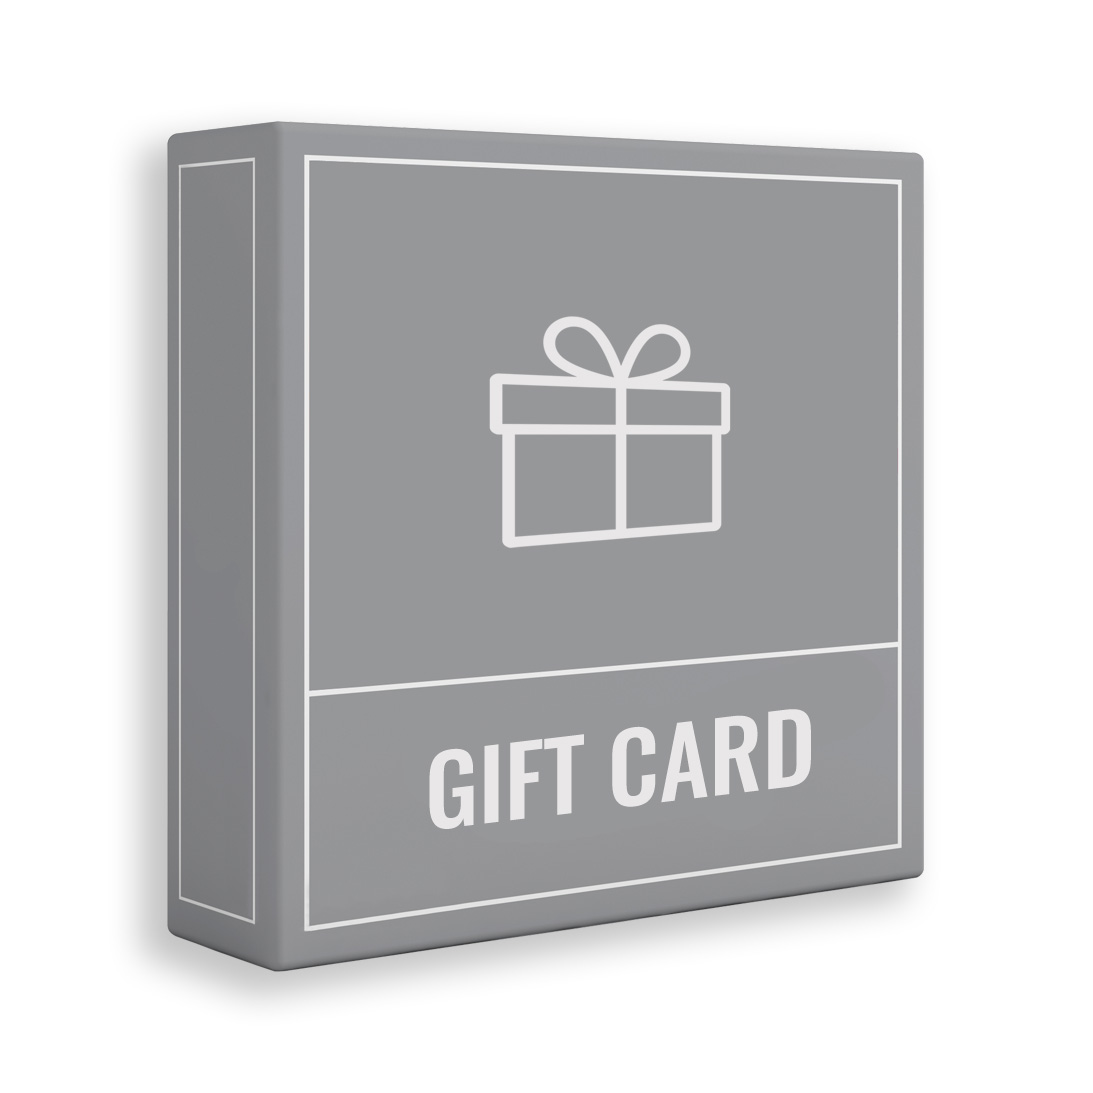 Cloudberries gift cards are the perfect present for puzzlers!